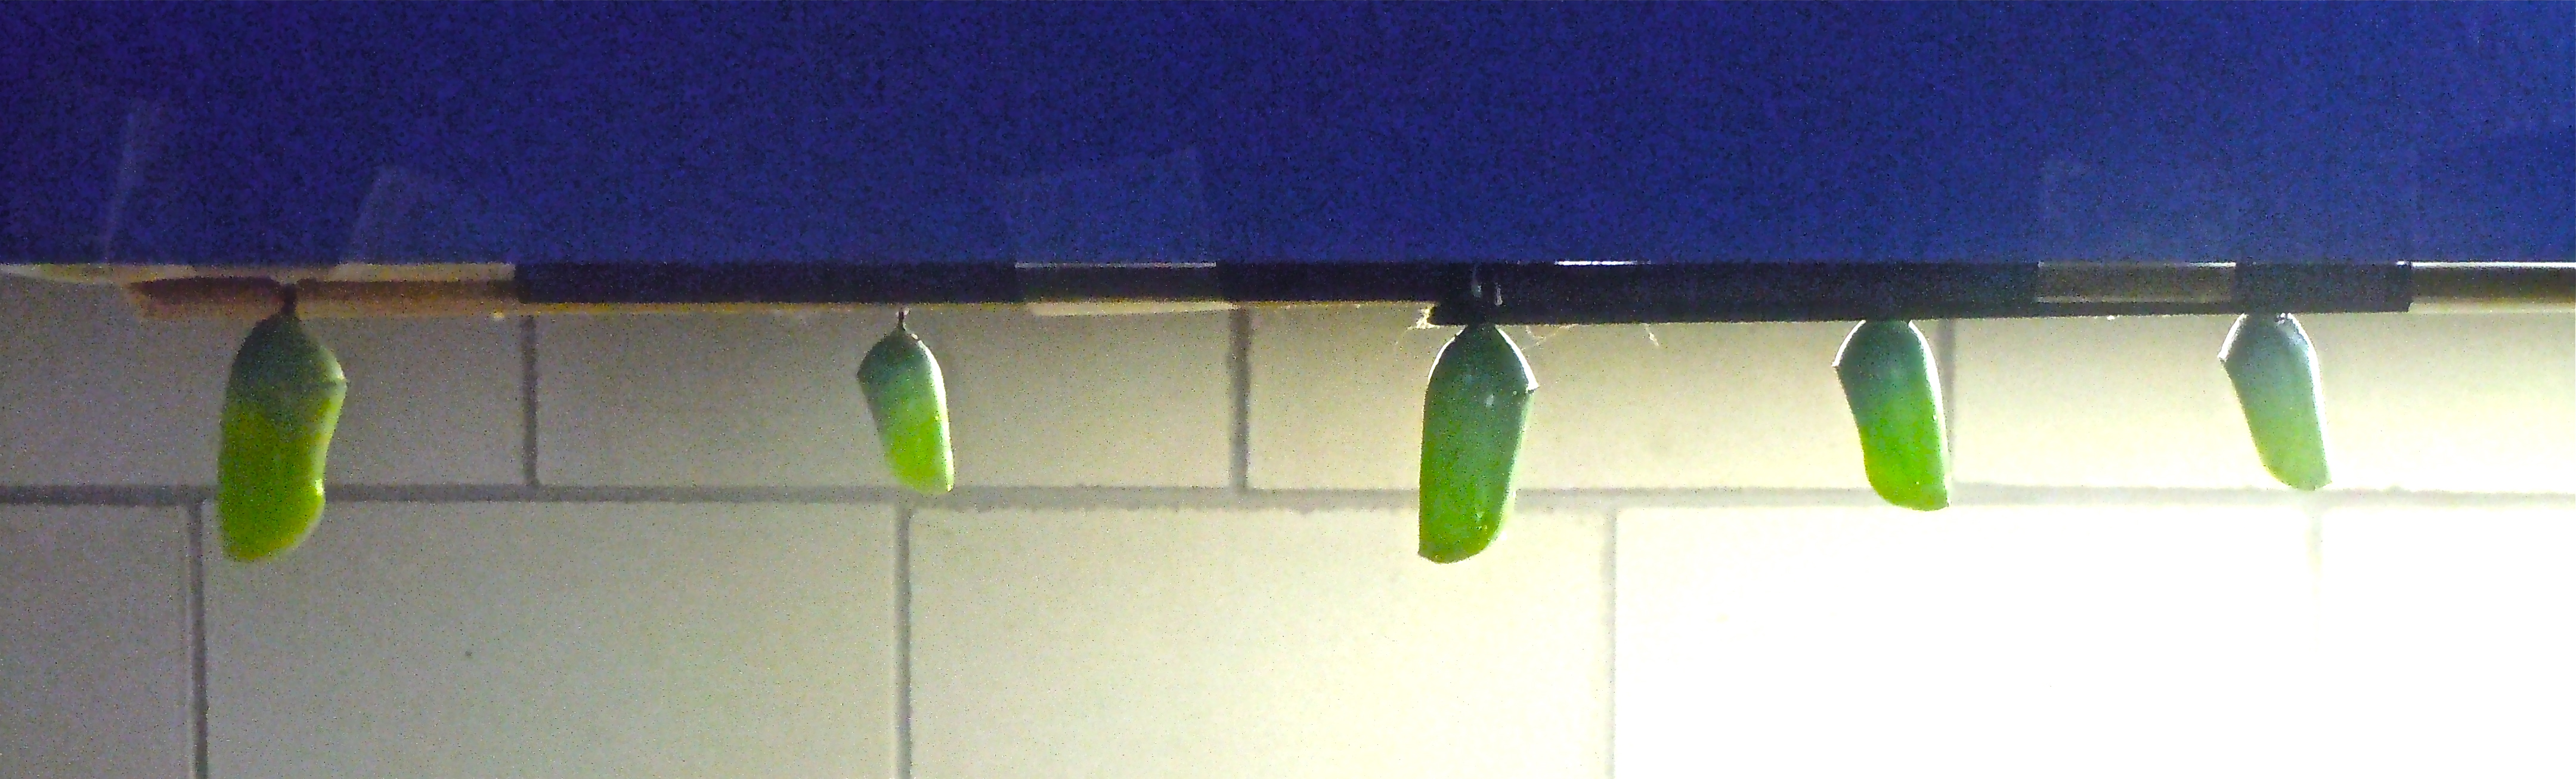 Monarch and Queen Chrysalises taped to Kitchen Counter